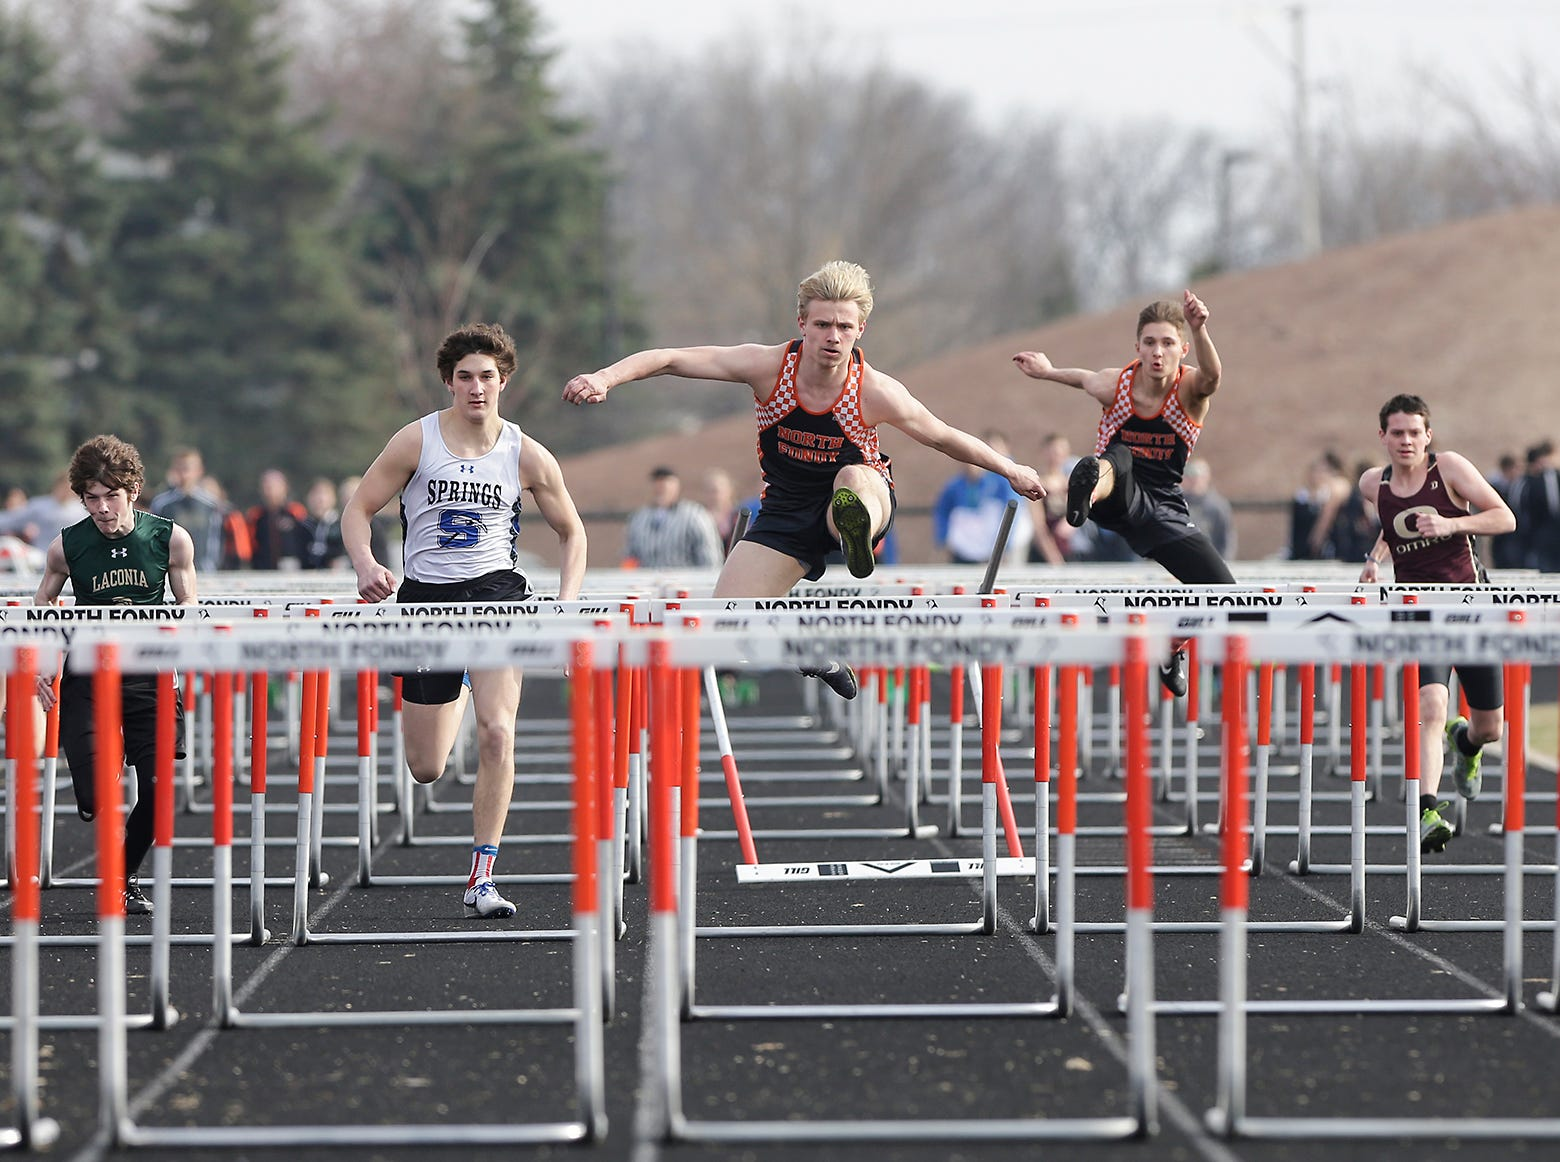 Laconia High School's Trebeck Lemond, St. Mary's Springs Academy's Jacob Koffman, North Fond du Lac's Dalton Fritch and Cameron Hilt and Omro's Gavin Knurowski and Ben Lehman take part in the boys 110 meter hurdles Tuesday, April 16, 2019 at North Fond du Lac High School in North Fond du Lac, Wis. Doug Raflik/USA TODAY NETWORK-Wisconsin